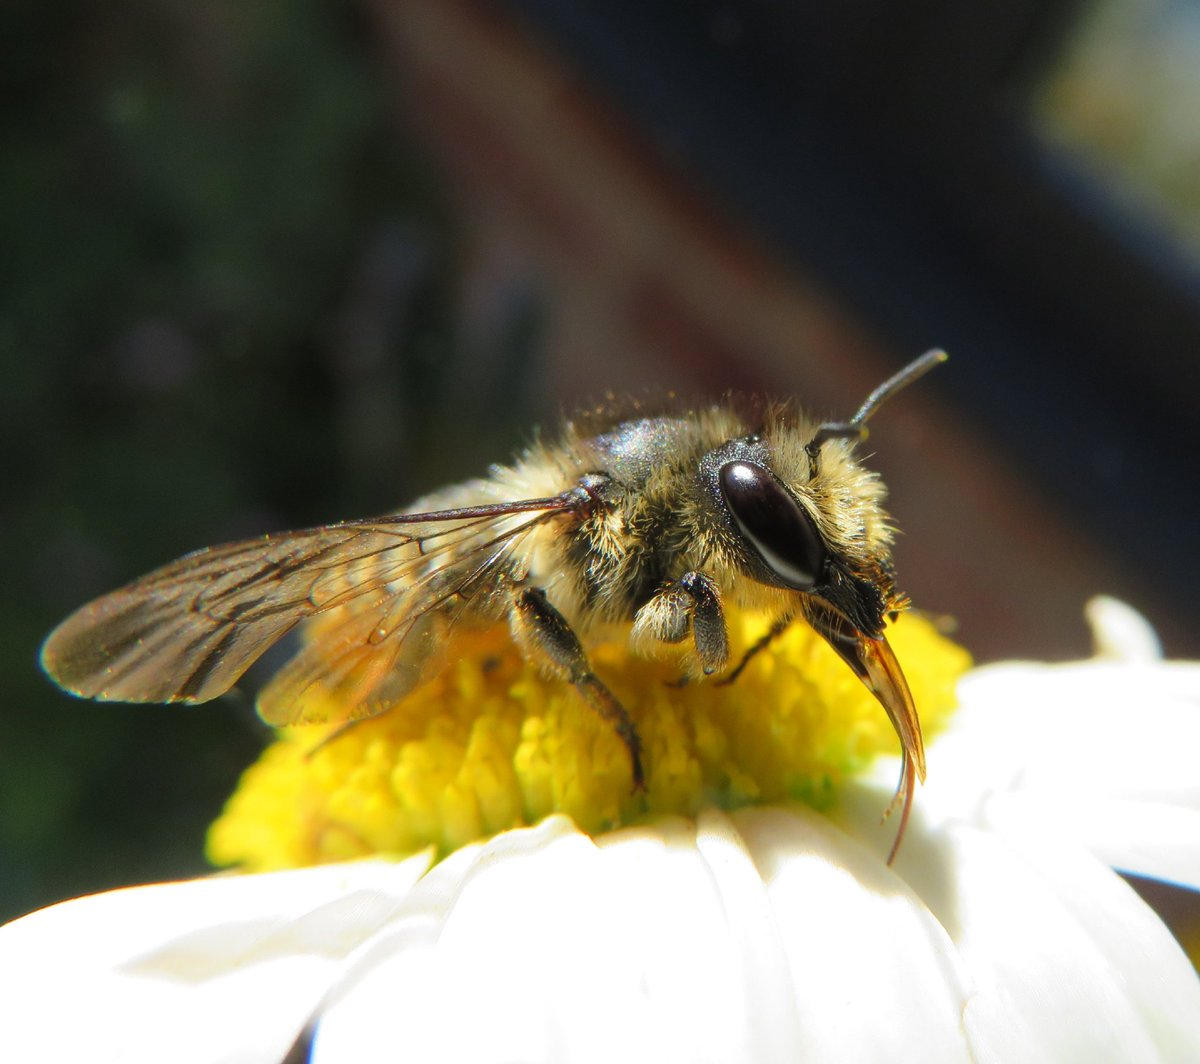 Leaf cutter bee I think. Posing on a moon Daisy in the garden. @Bees @NHM_Bees @BumblebeeTrust @BTO_GBW @BBOWT @NatureUK @Natures_Voicepic.twitter.com/FA11mwJlPp  by Magpie